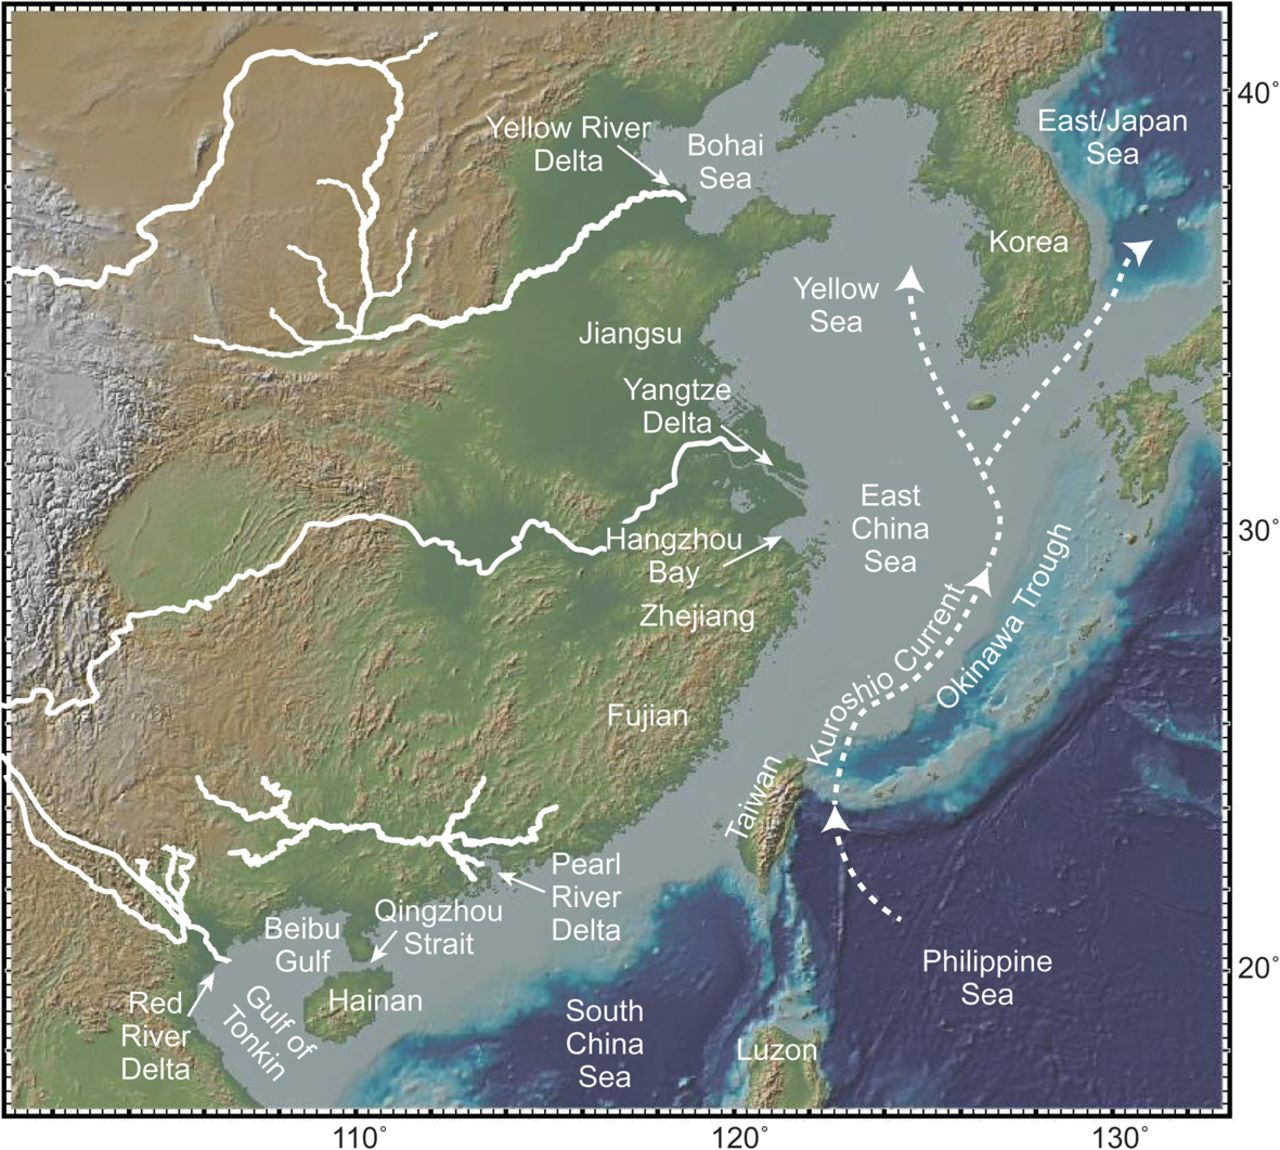 china sea and pearl river delta The pearl river delta metropolitan region (prd, 珠江三角洲都會區), also known as zhujiang delta, zhusanjiao or greater bay area (粤港澳大灣區), is the low-lying area surrounding the pearl river estuary, where the pearl river flows into the south china sea it is one of the most densely.